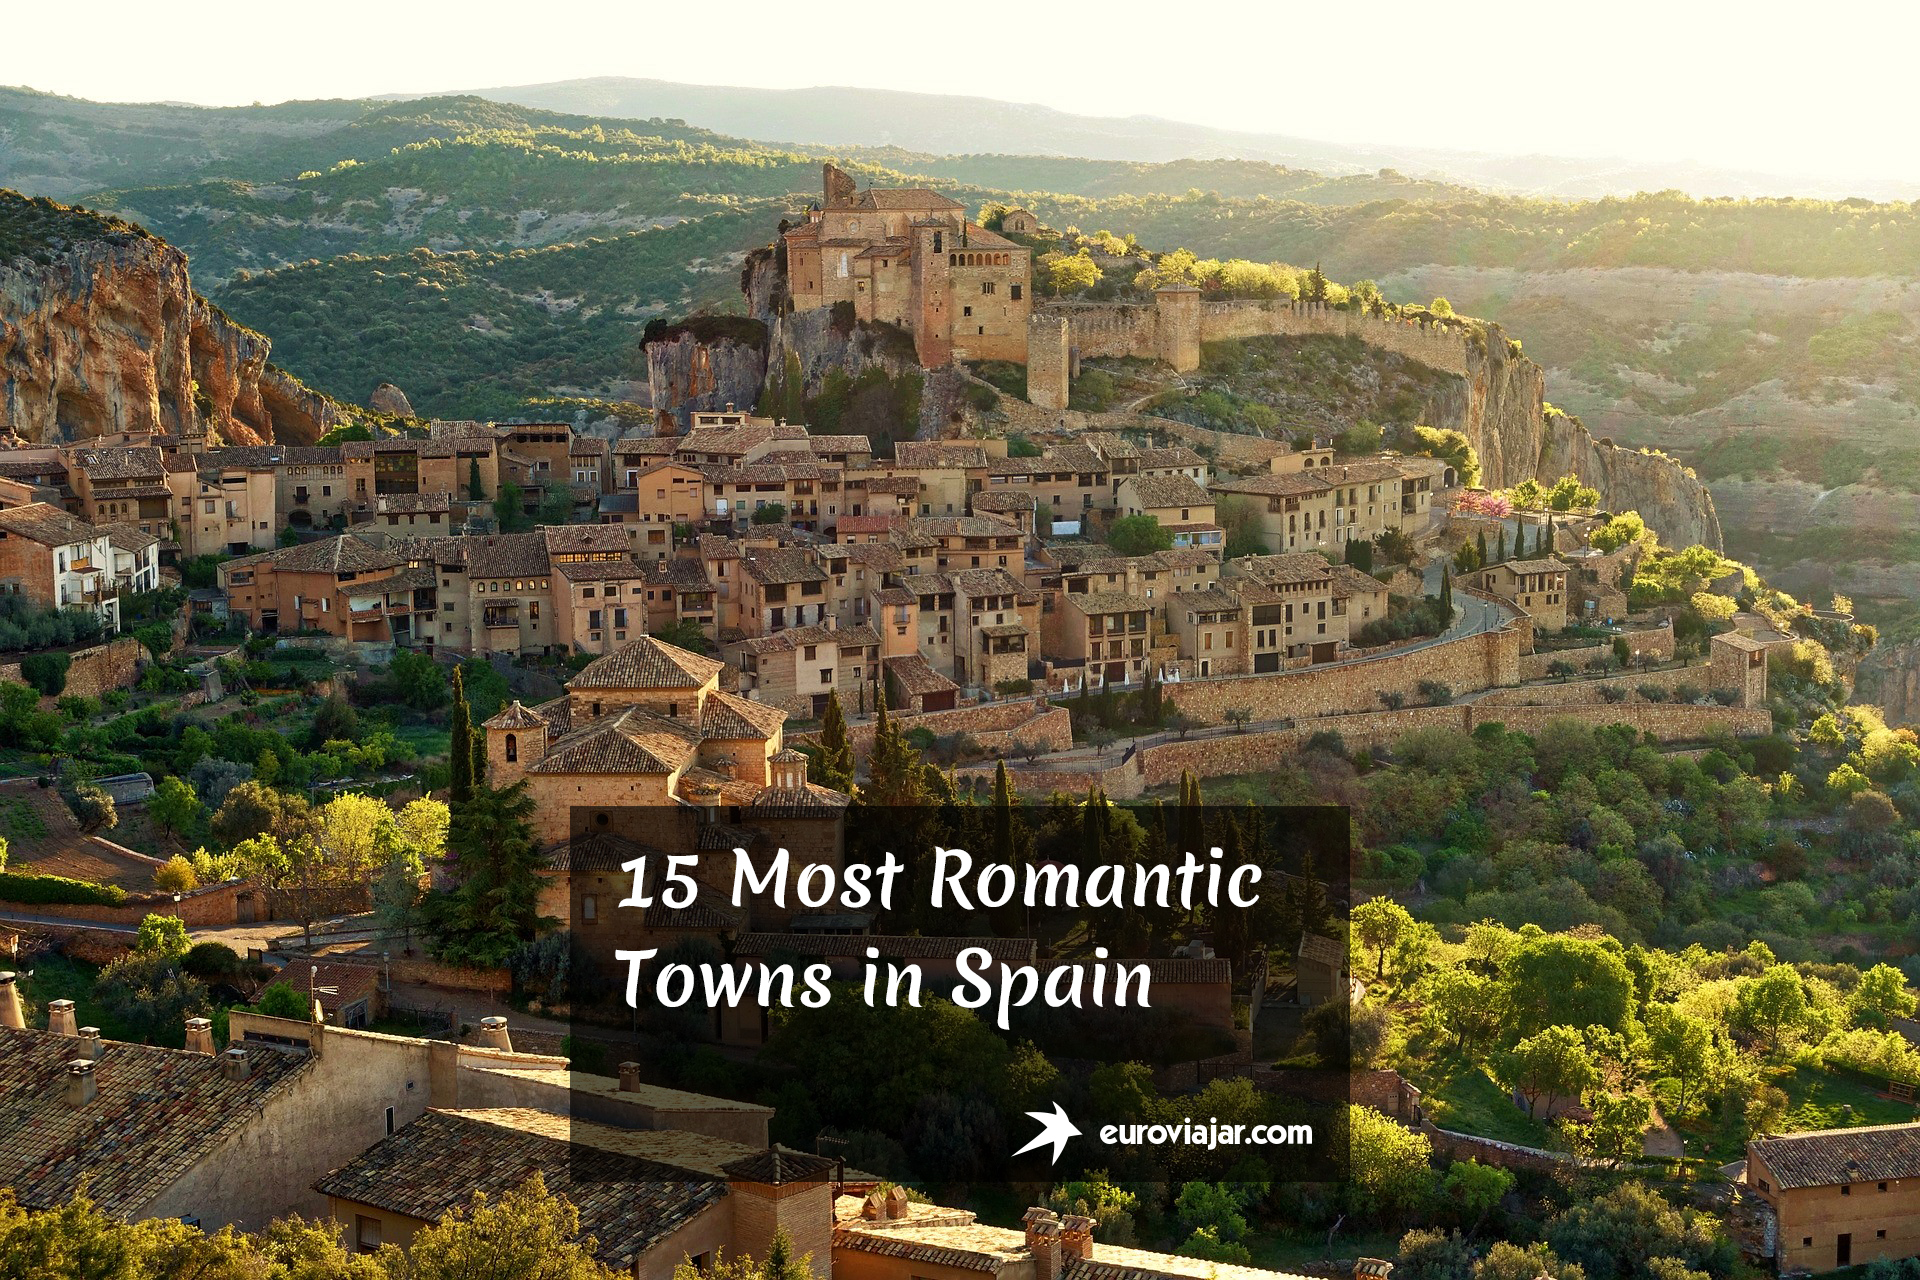 Most Romantic Towns in Spain